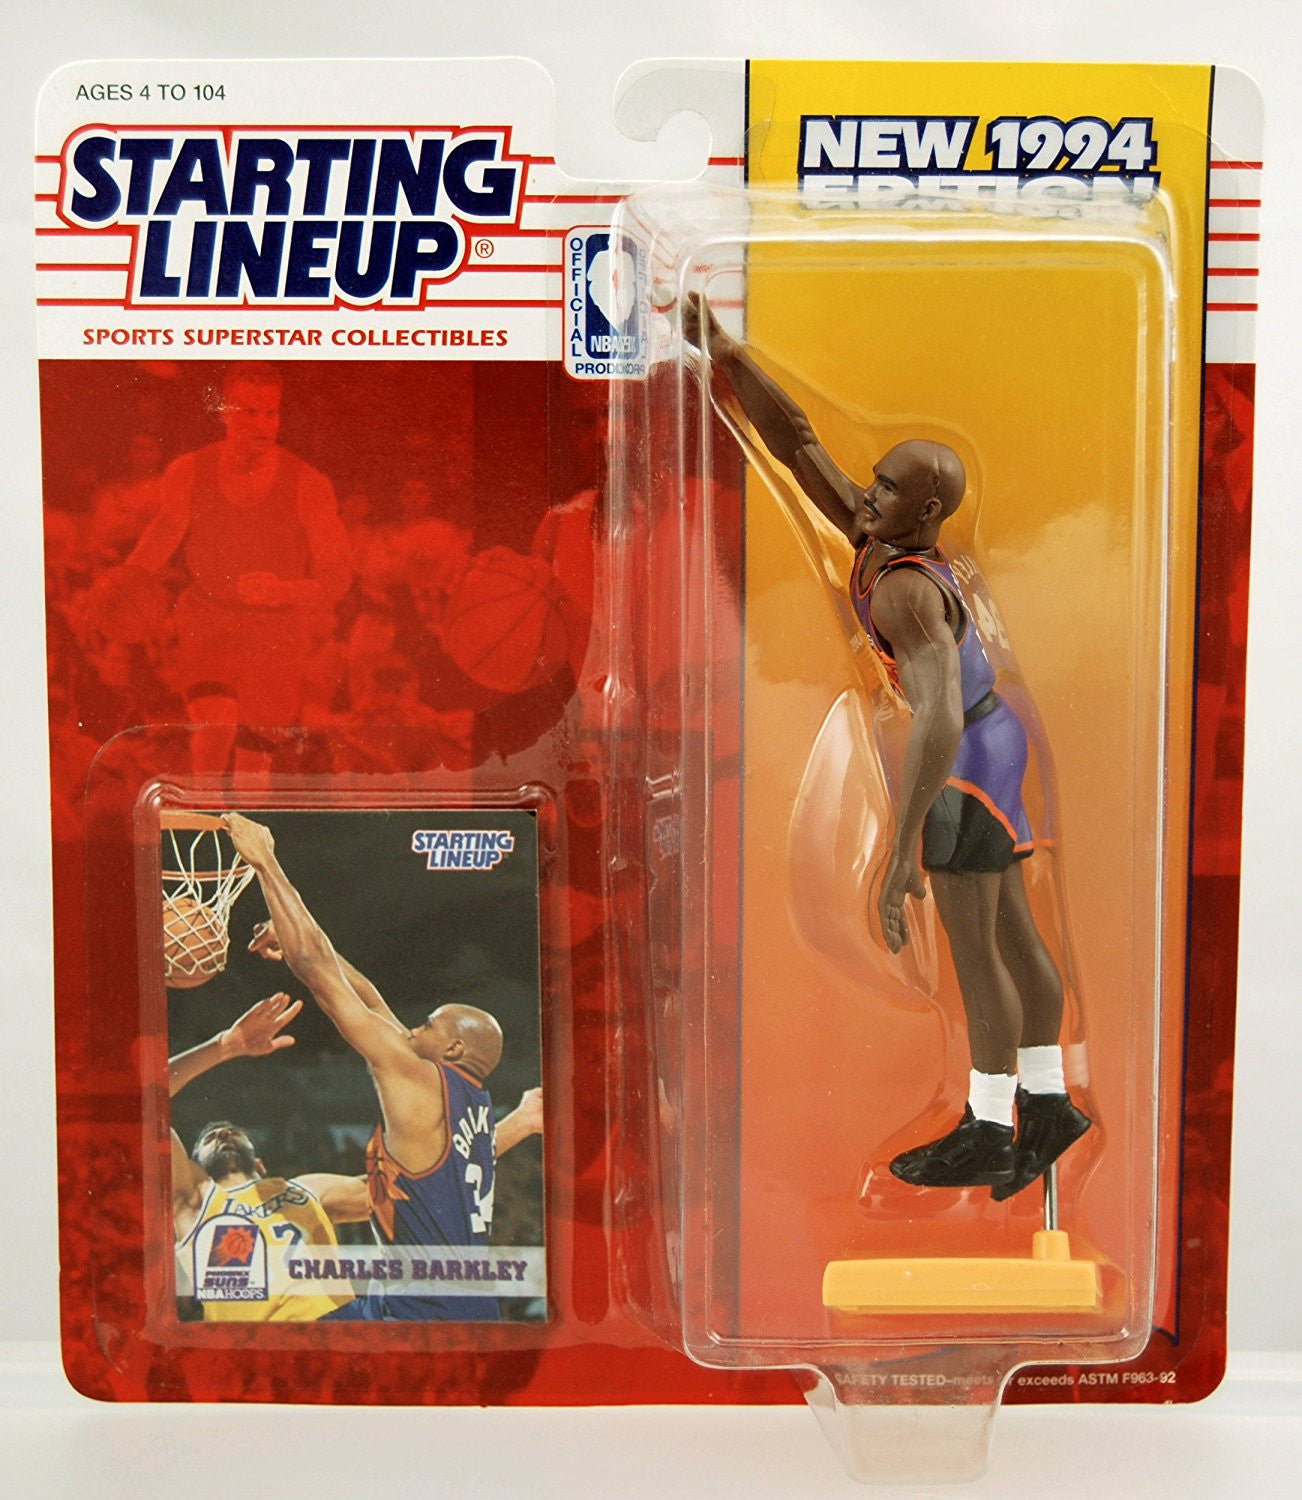 Starting Lineup Sports Superstar Collectibles Charles Barkley 1994 Phoenix Suns